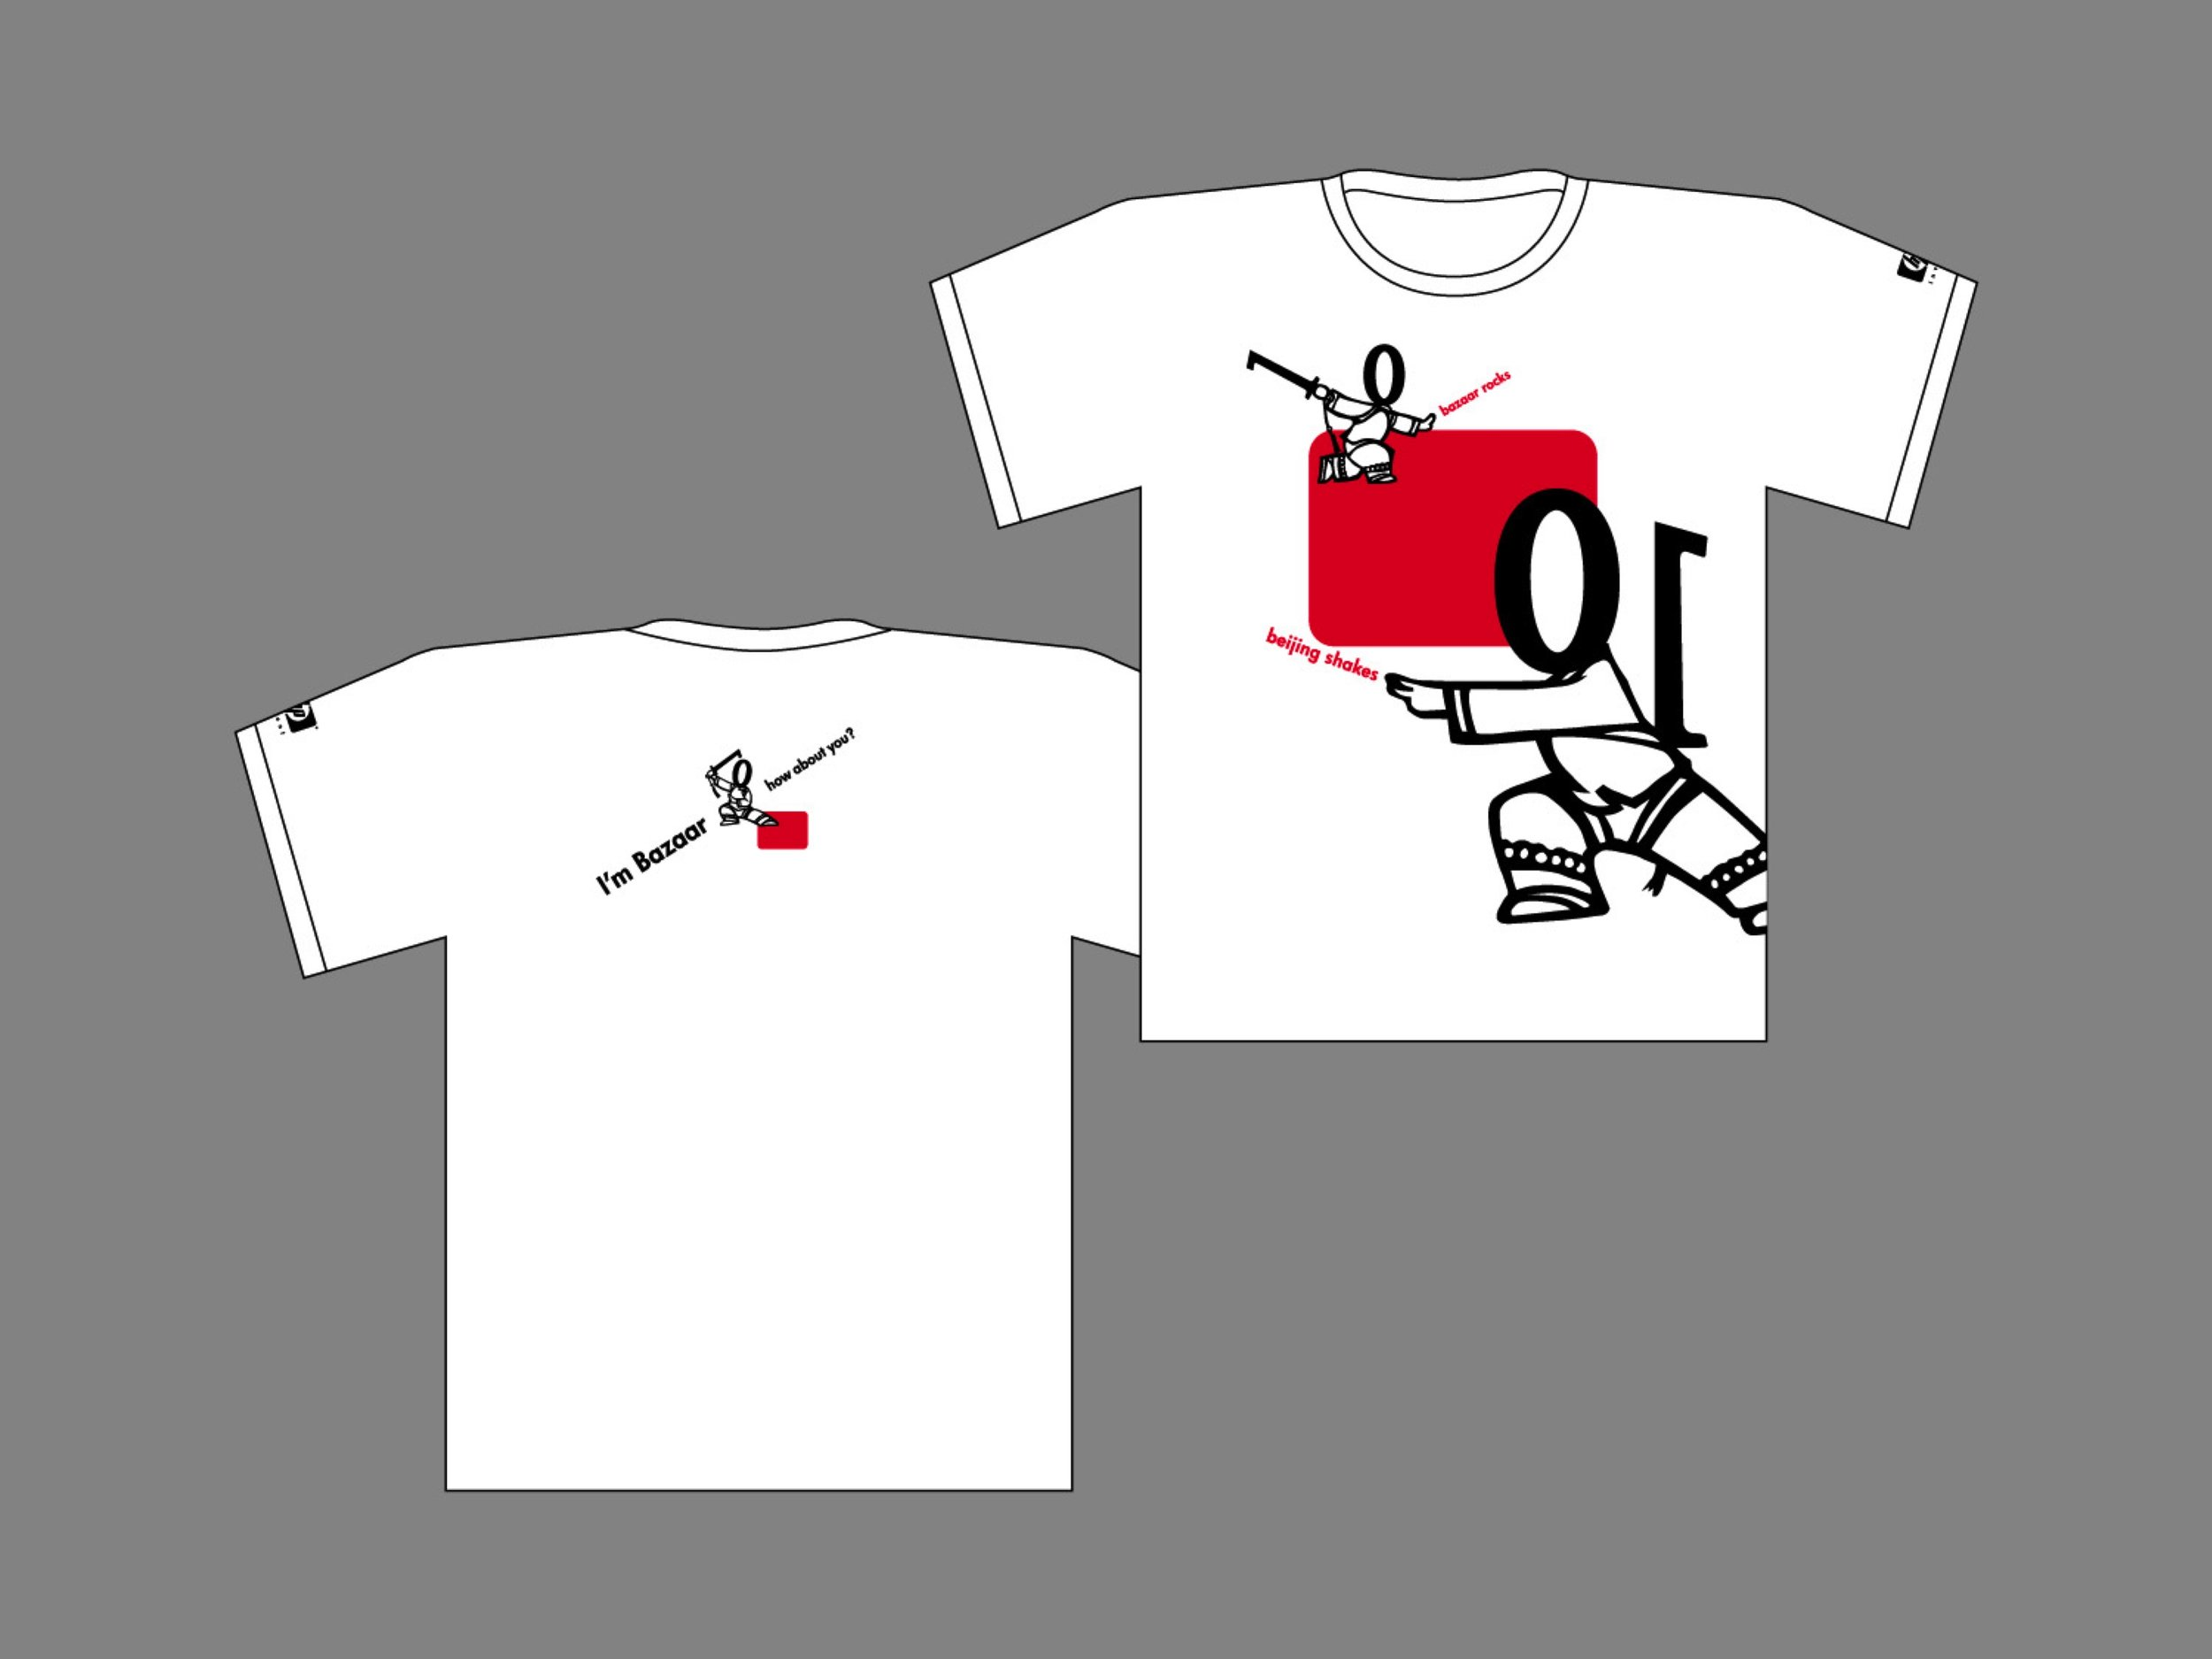 T-shirts for participants.  FRONT : 'bazaar rocks, beijing shakes'  BACK : 'I am Bazaar. how about you?'